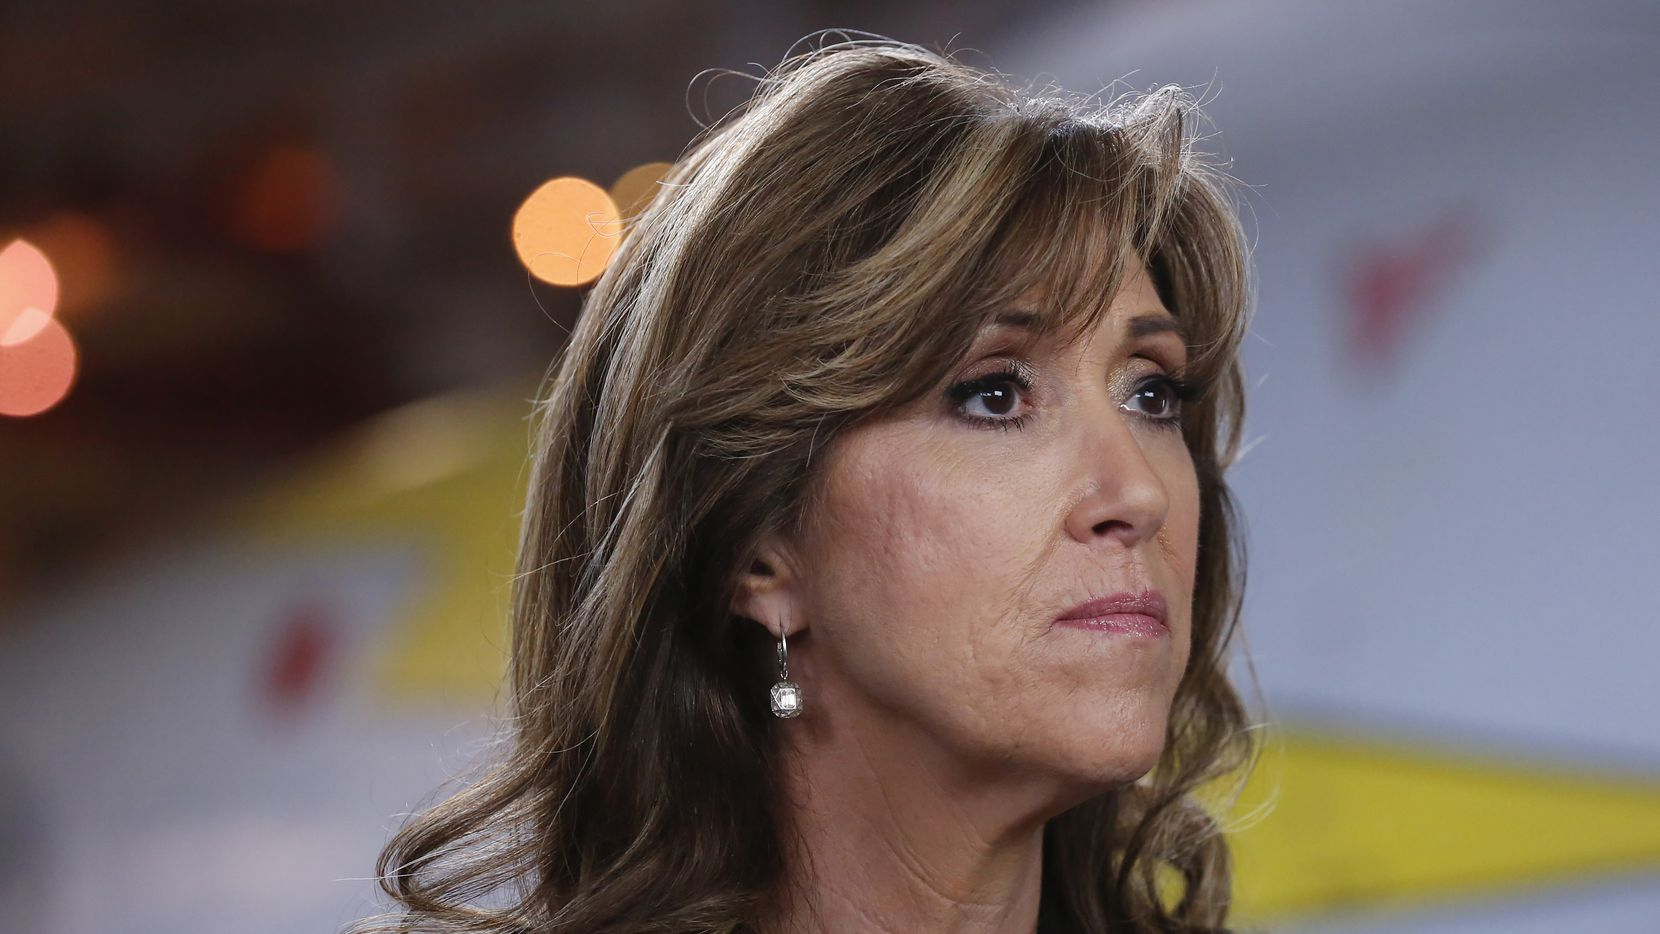 Southwest Airlines Capt. Tammie Jo Shults in an interview with ABC's 20/20 set to air Friday night.  (ABC/Heidi Gutman)